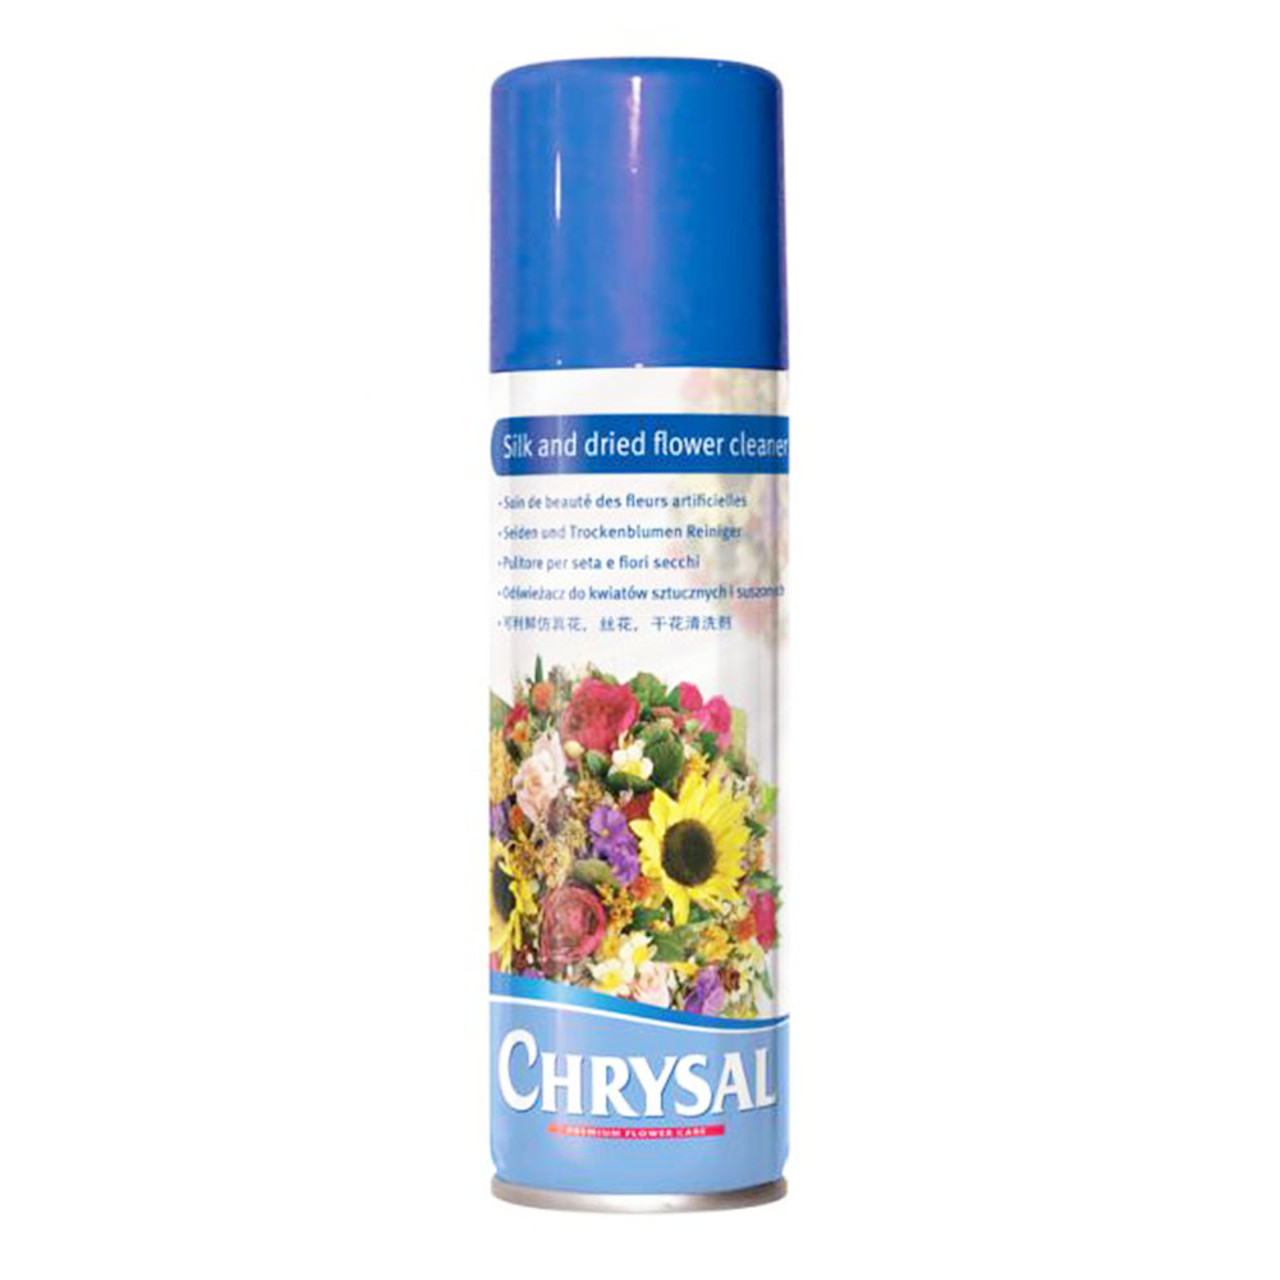 Chrysal Silk And Dried Flower Cleaner Lo Florist Supplies